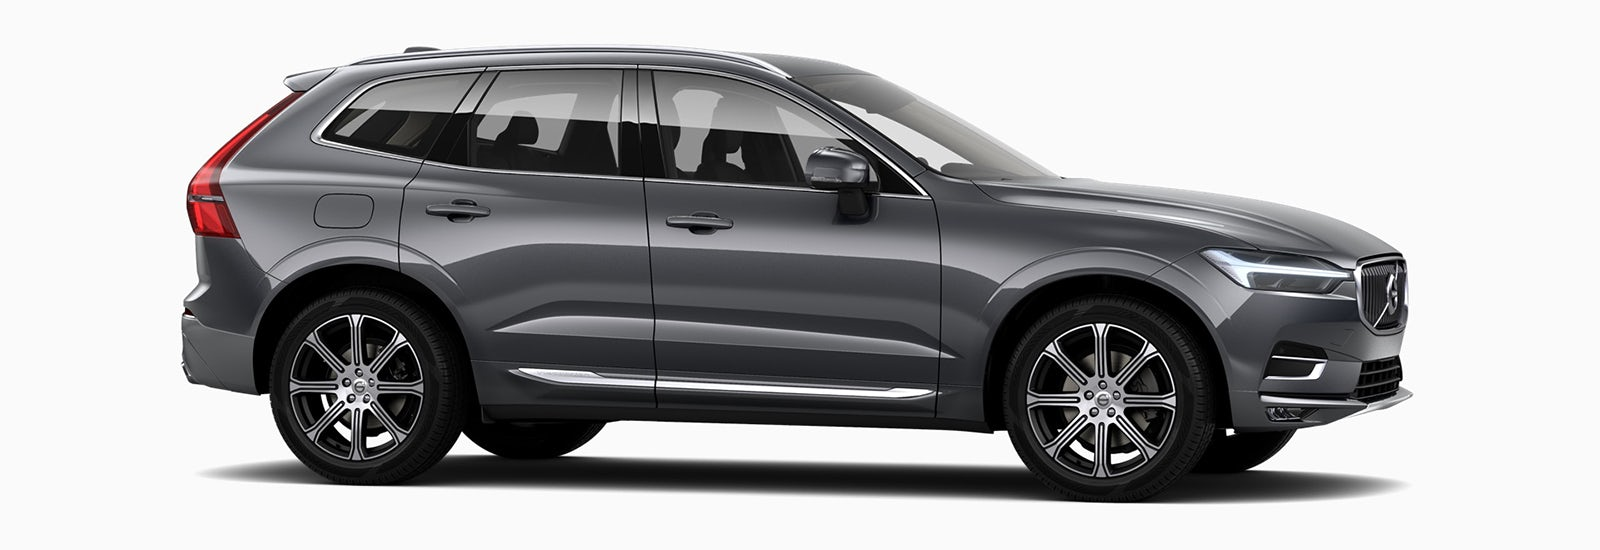 Color magic car polish silver -  Cleaning Than Other Shades But It Lends The Volvo A Sleek And Polished Look The Colour Is Available On All Three Trim Levels And Prospective Buyers